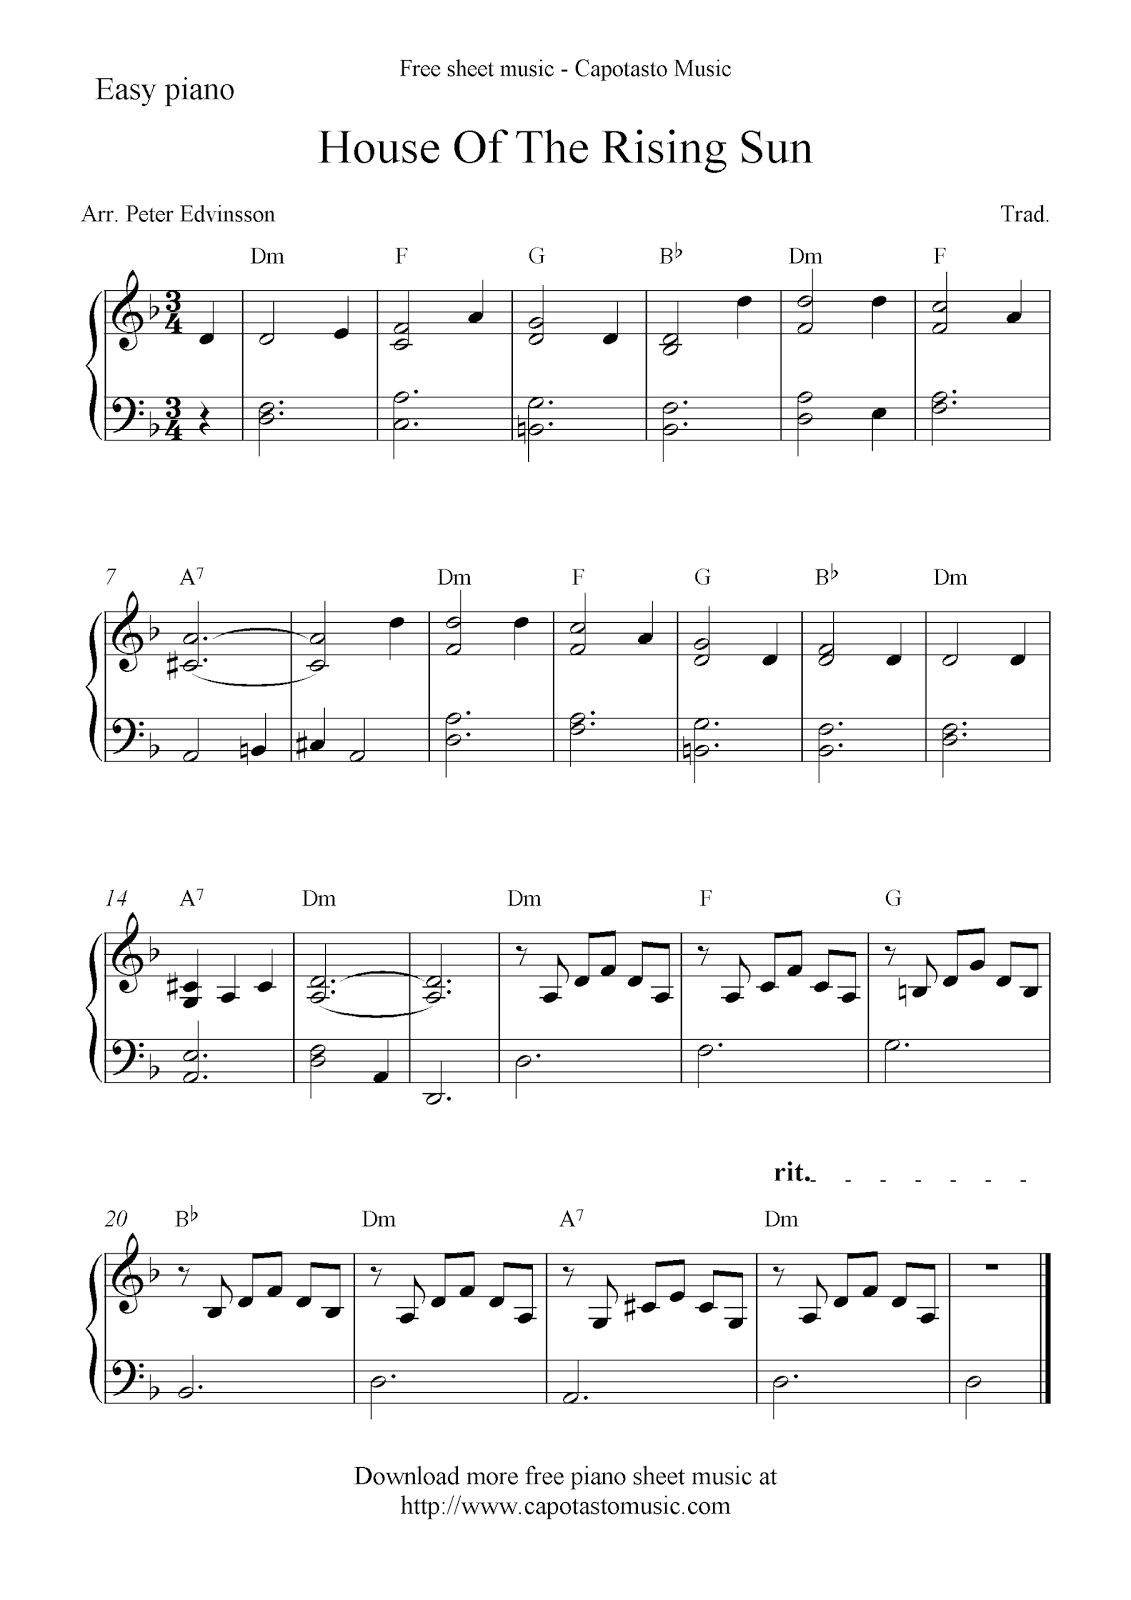 Free Sheet Music Scores: Free piano sheet music score, House Of The